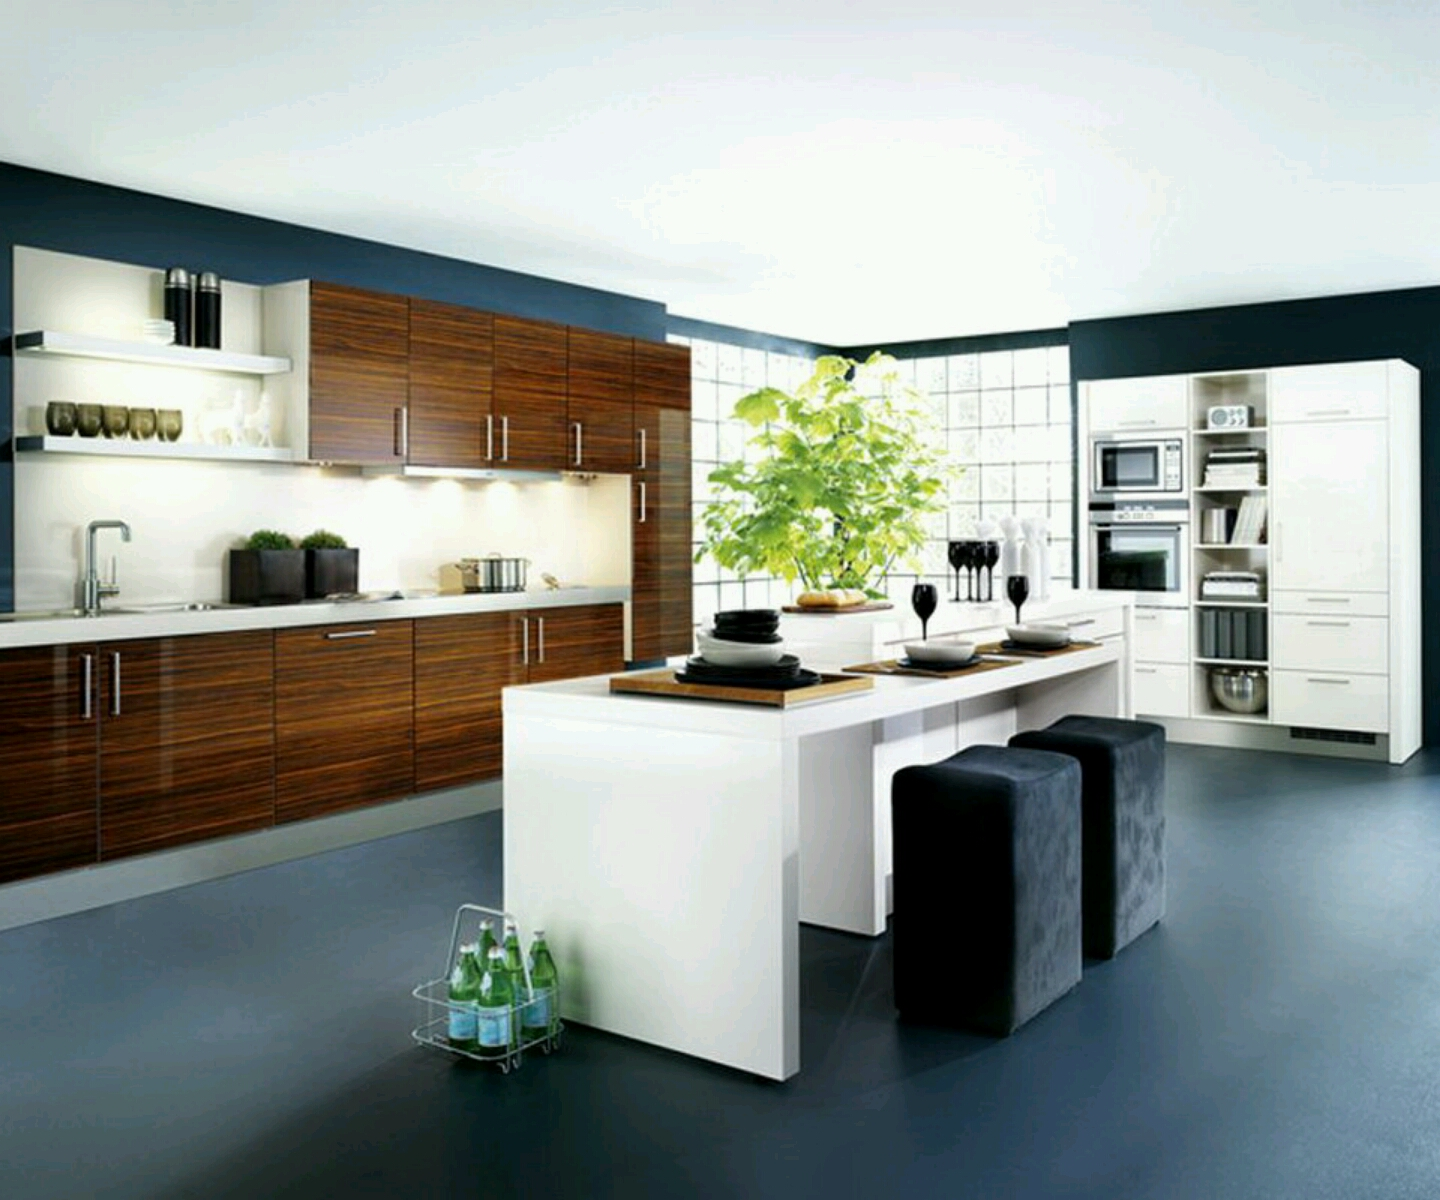 New home designs latest kitchen cabinets designs modern for Kitchen cabinet design